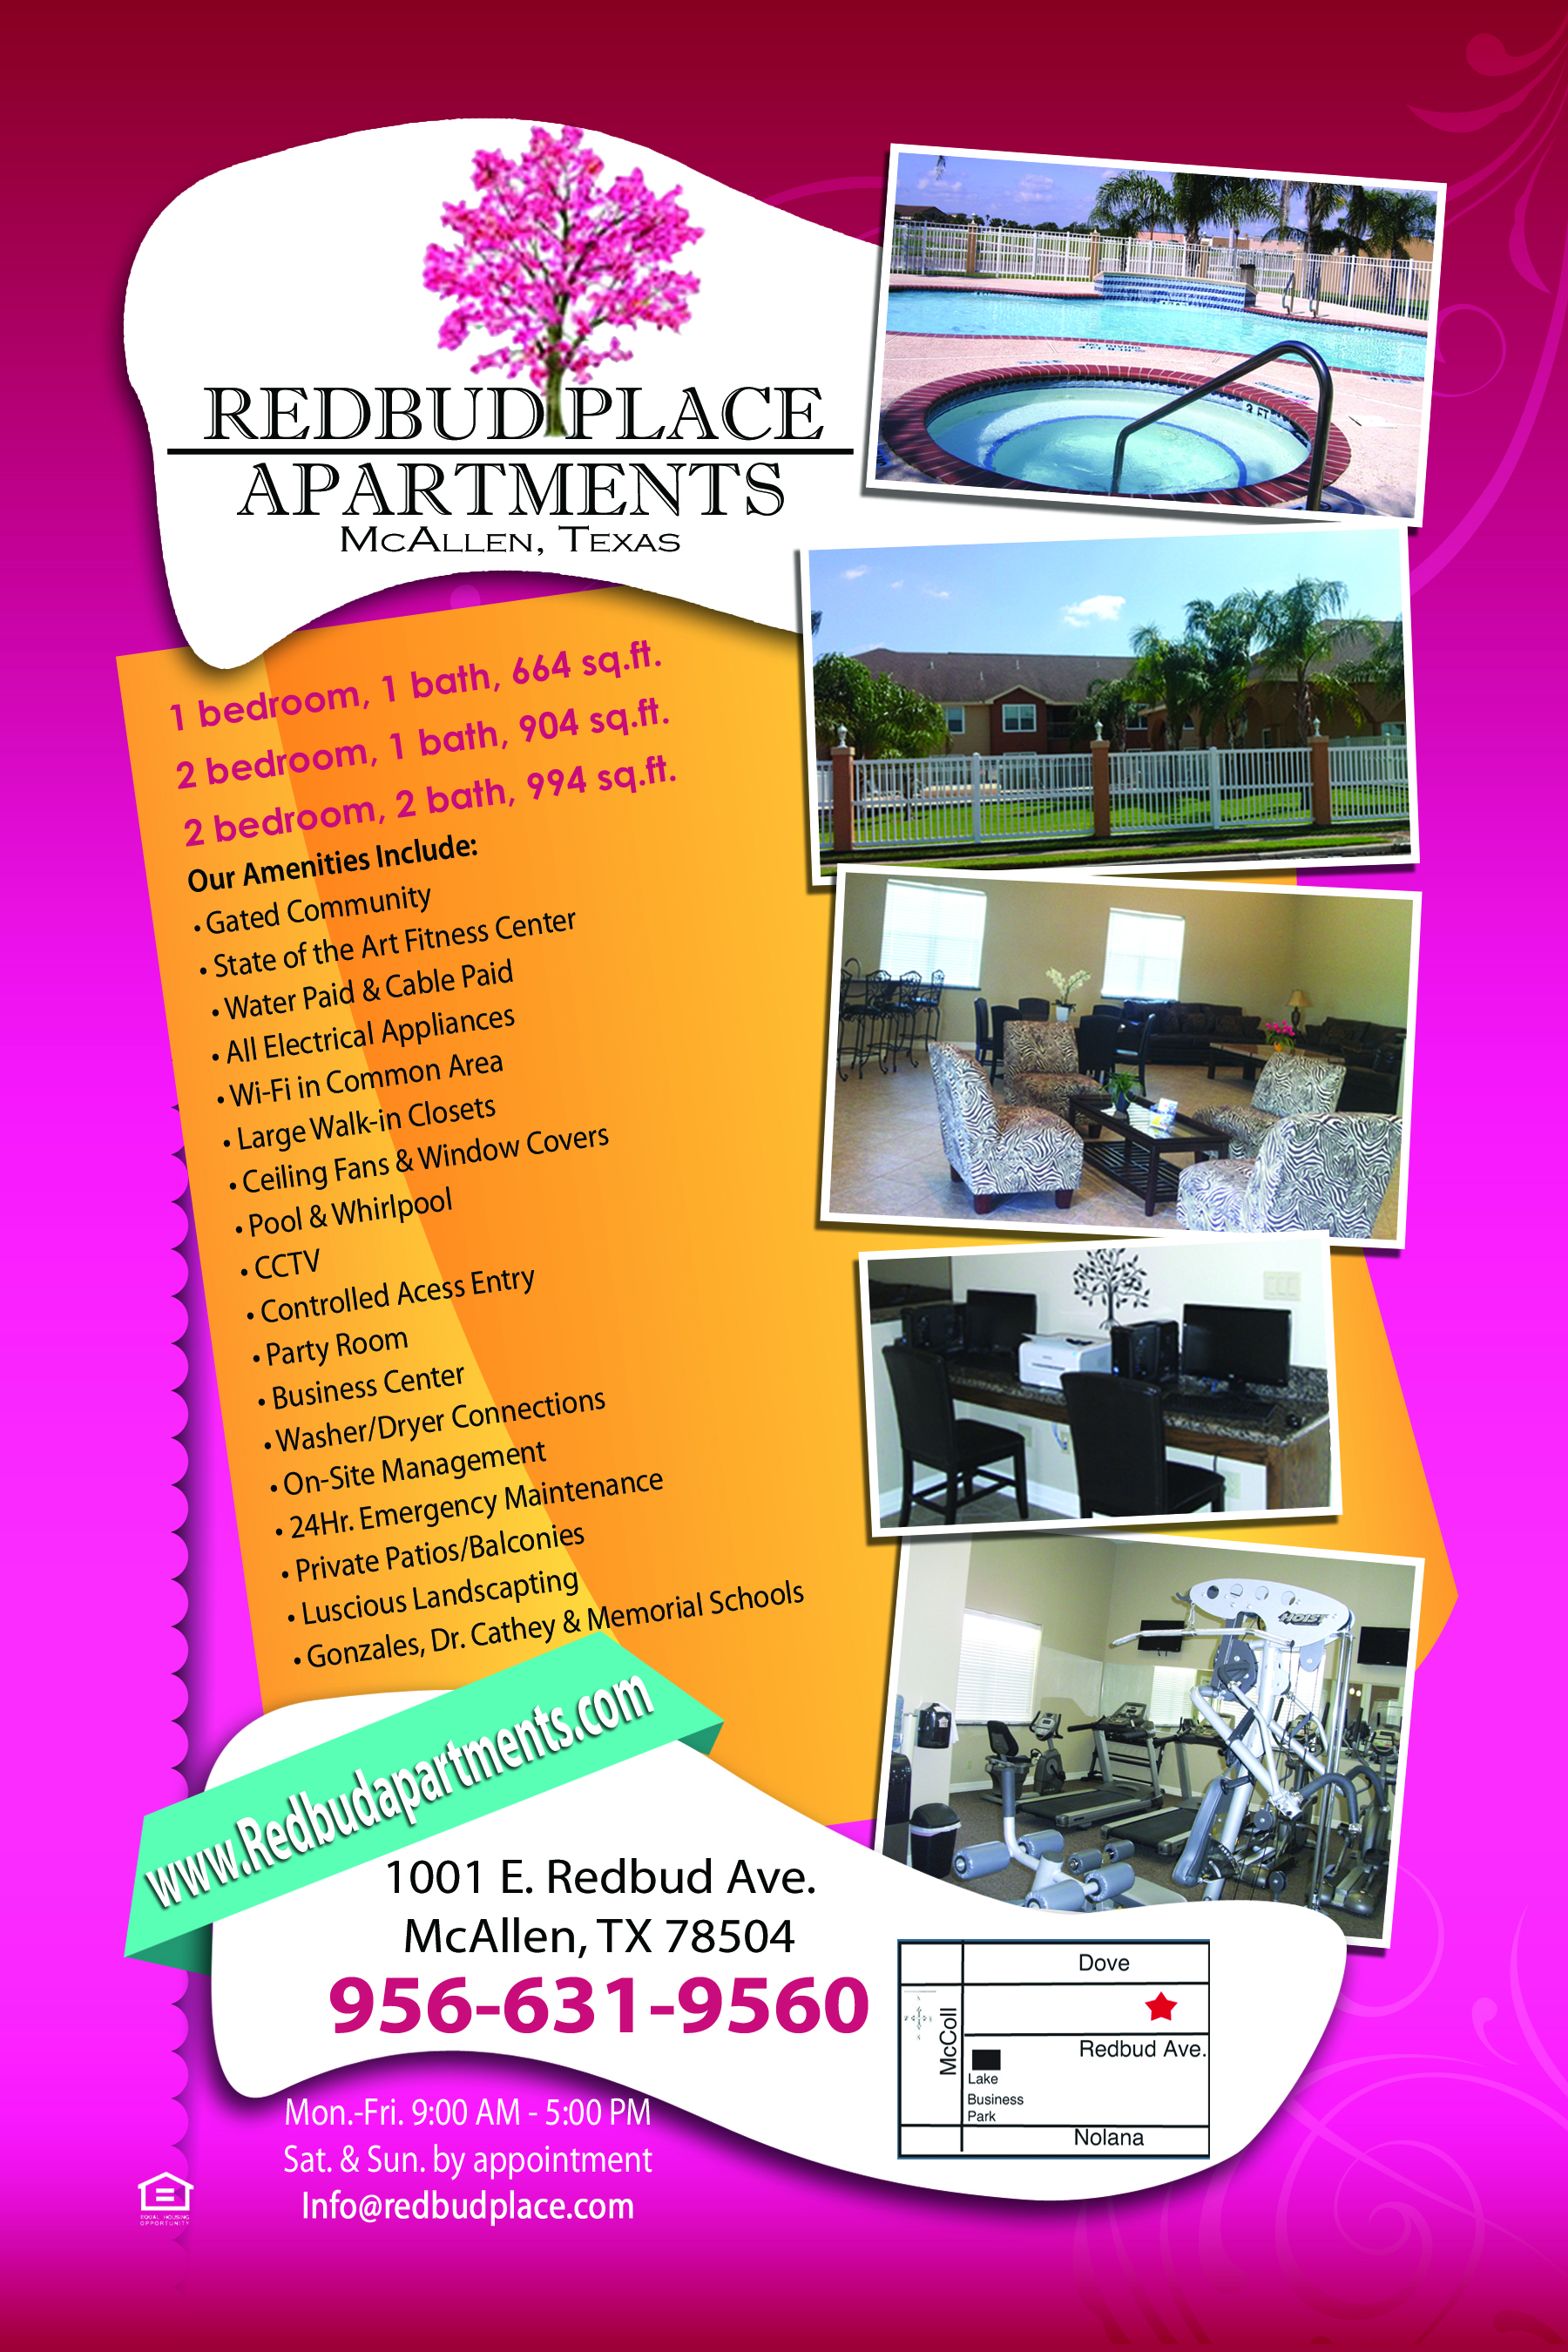 Redbud Place Apartments 1001 E Redbud Ave Mcallen Tx Show Me The Rent